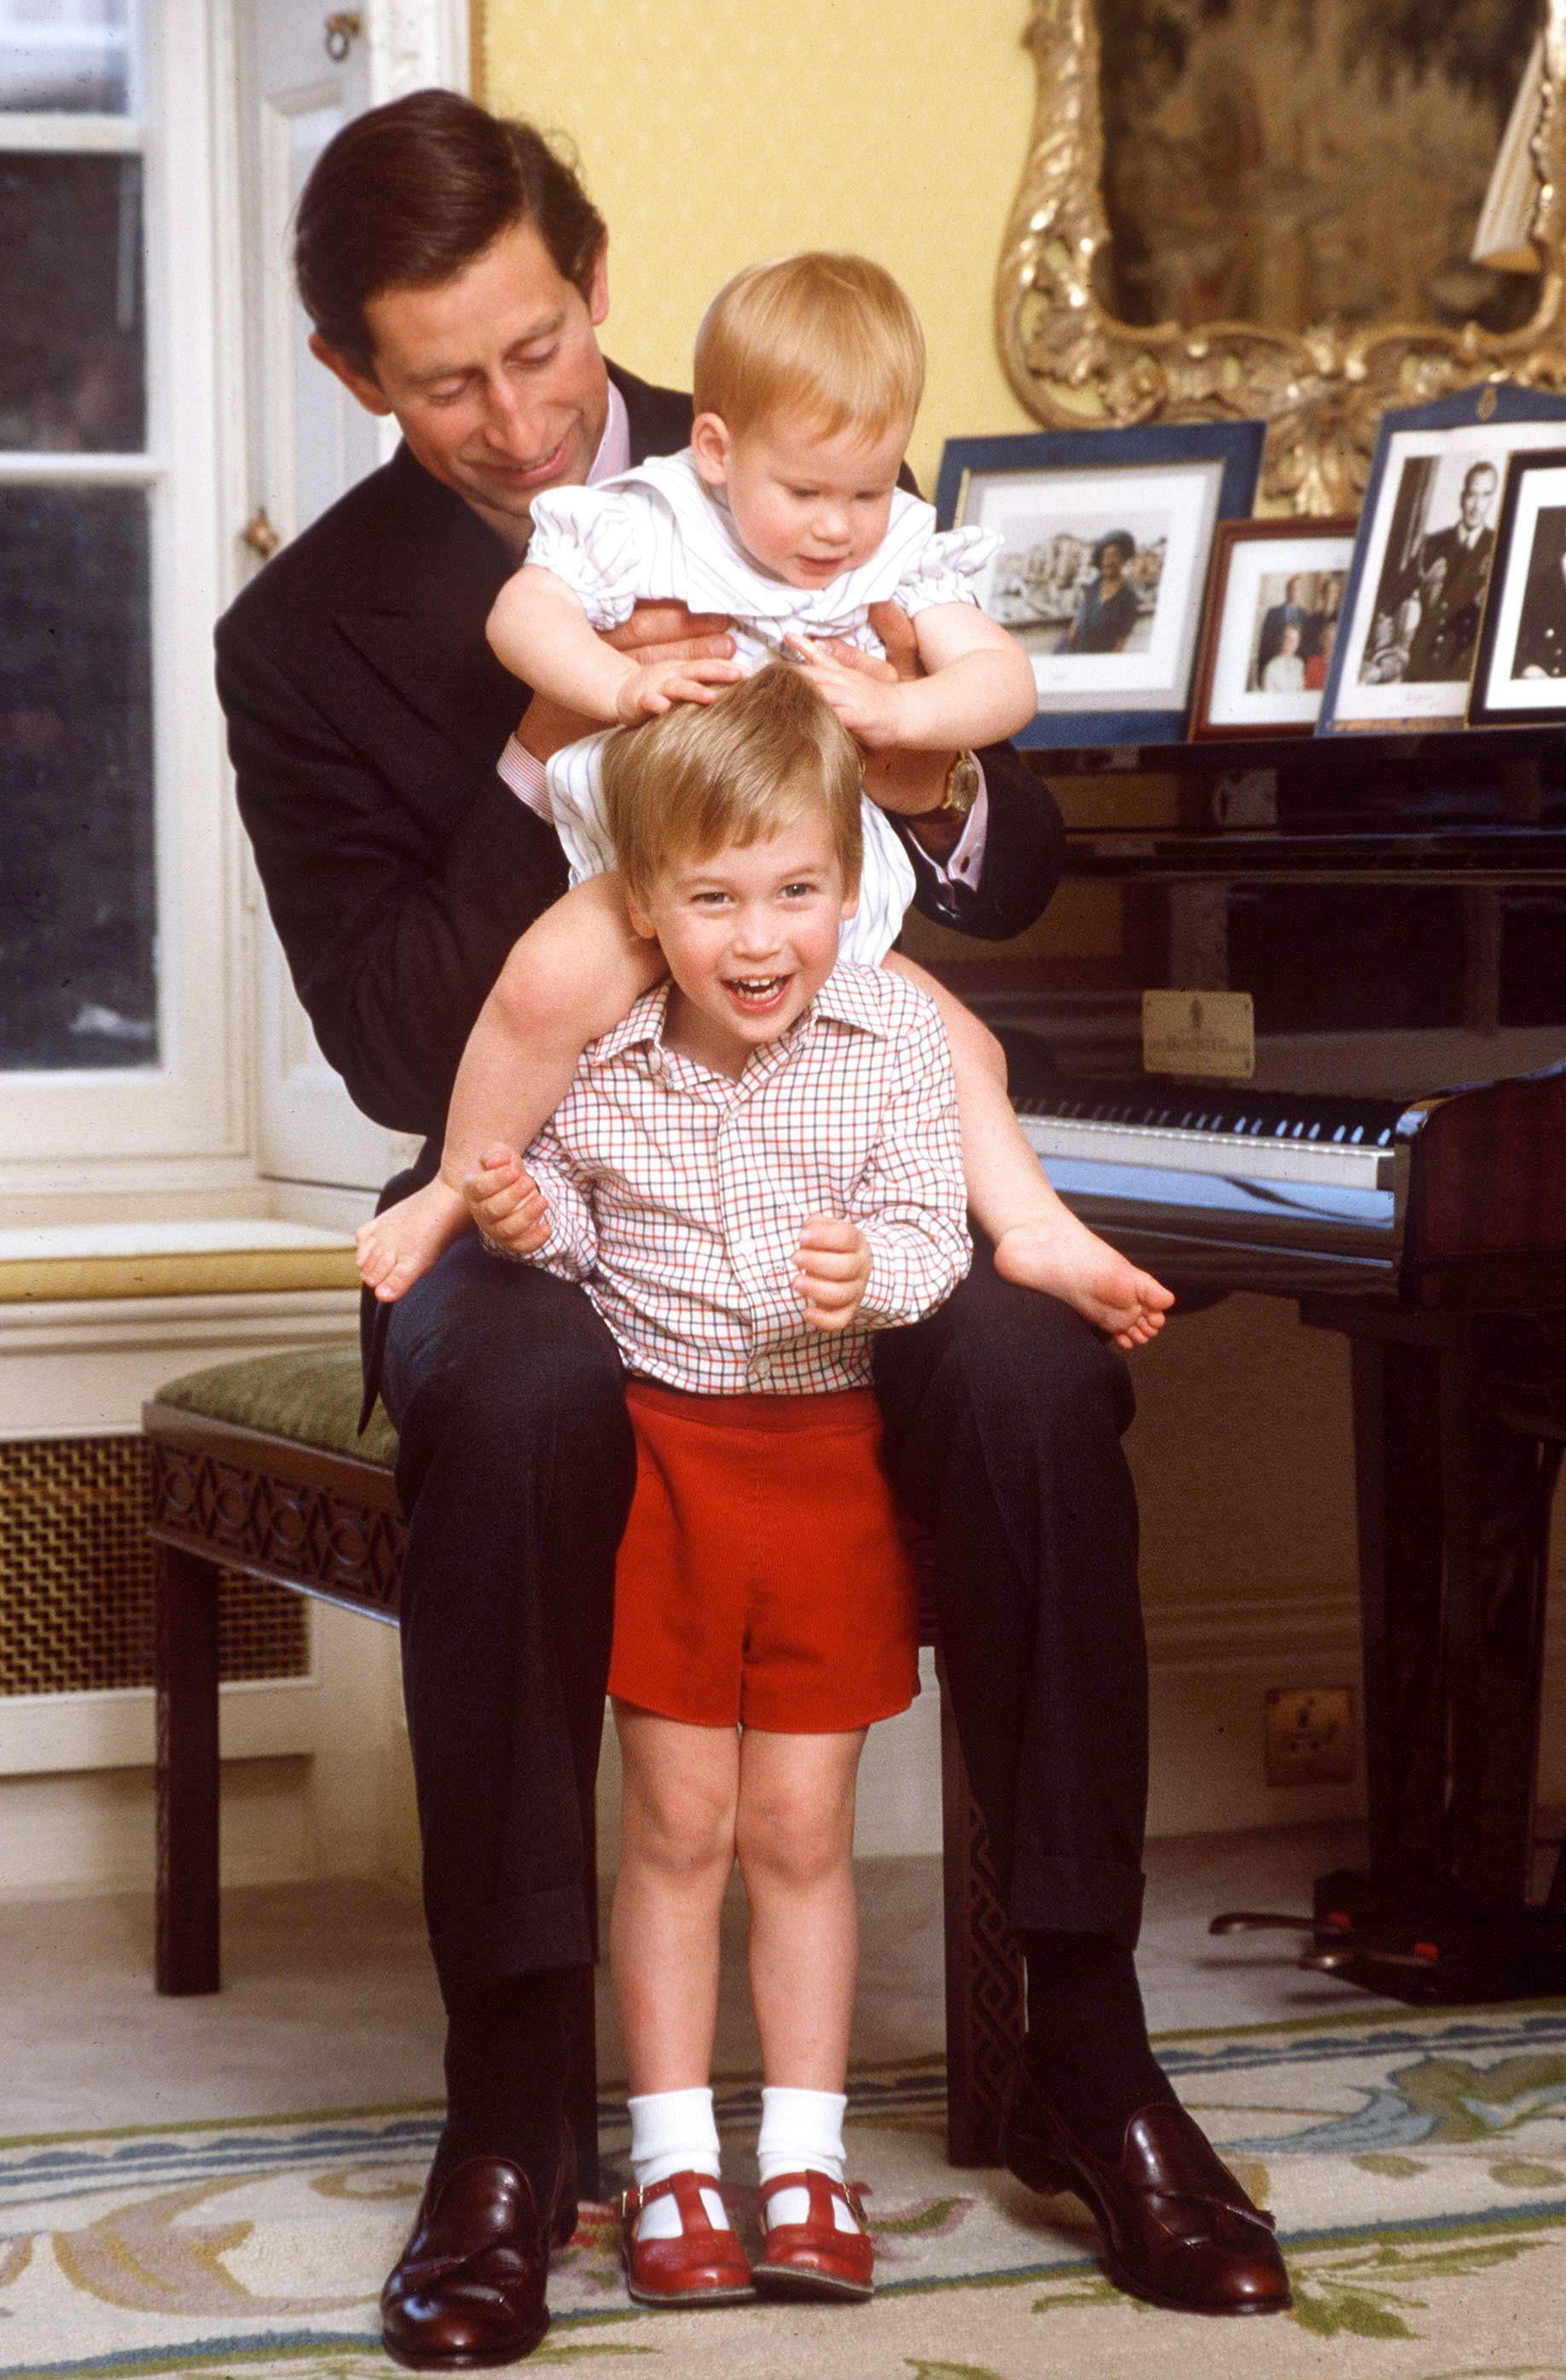 There are perks to being a part of the royal family, of course. But in 2012, Harry made it clear thatwhile he enjoys wo